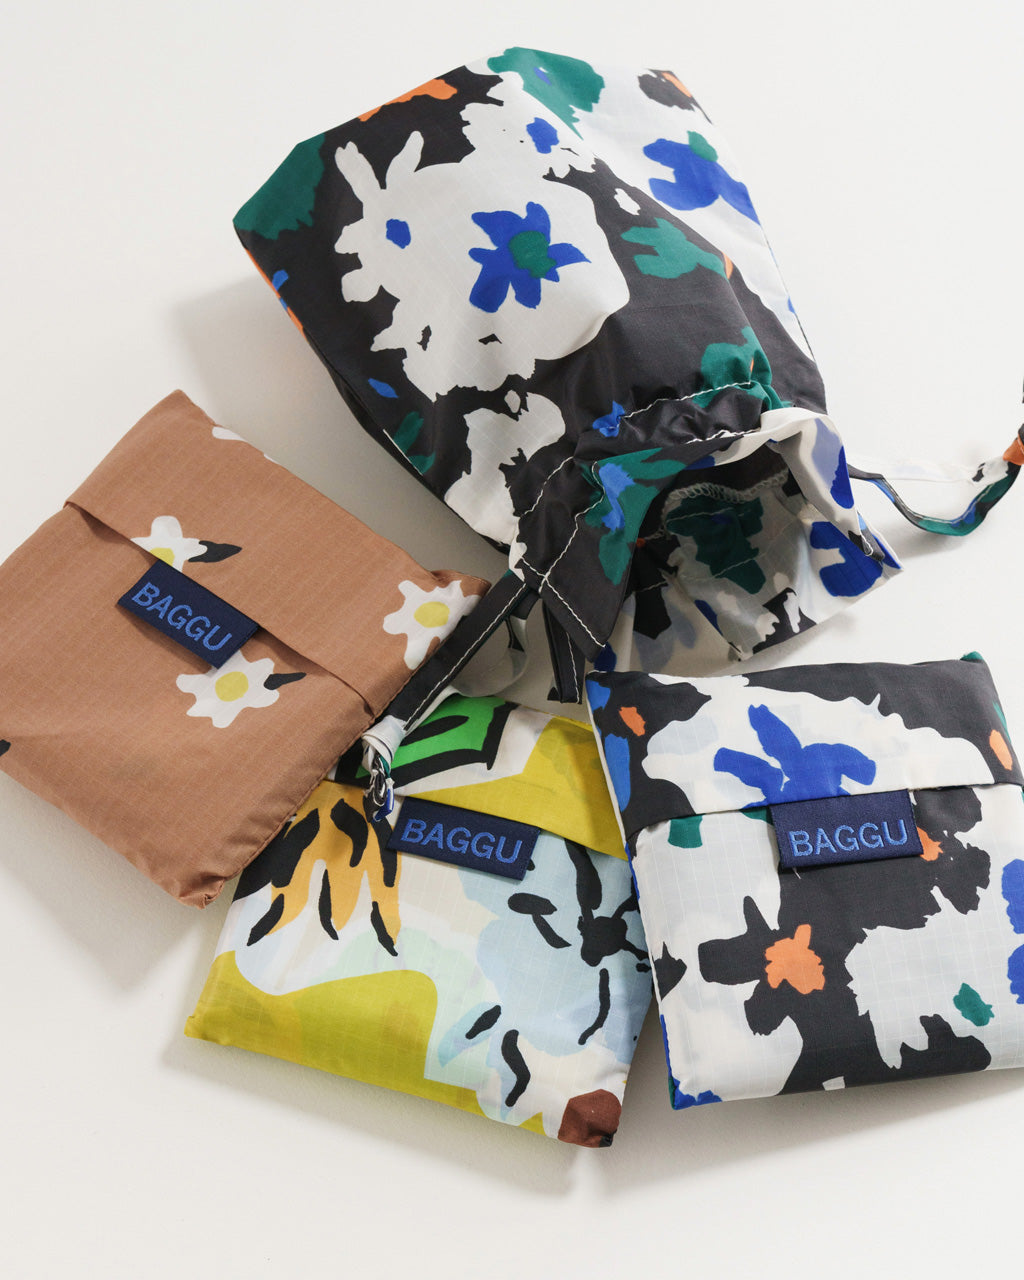 set of 3 standard baggu bags in various floral prints shown folded with matching carrying pouch